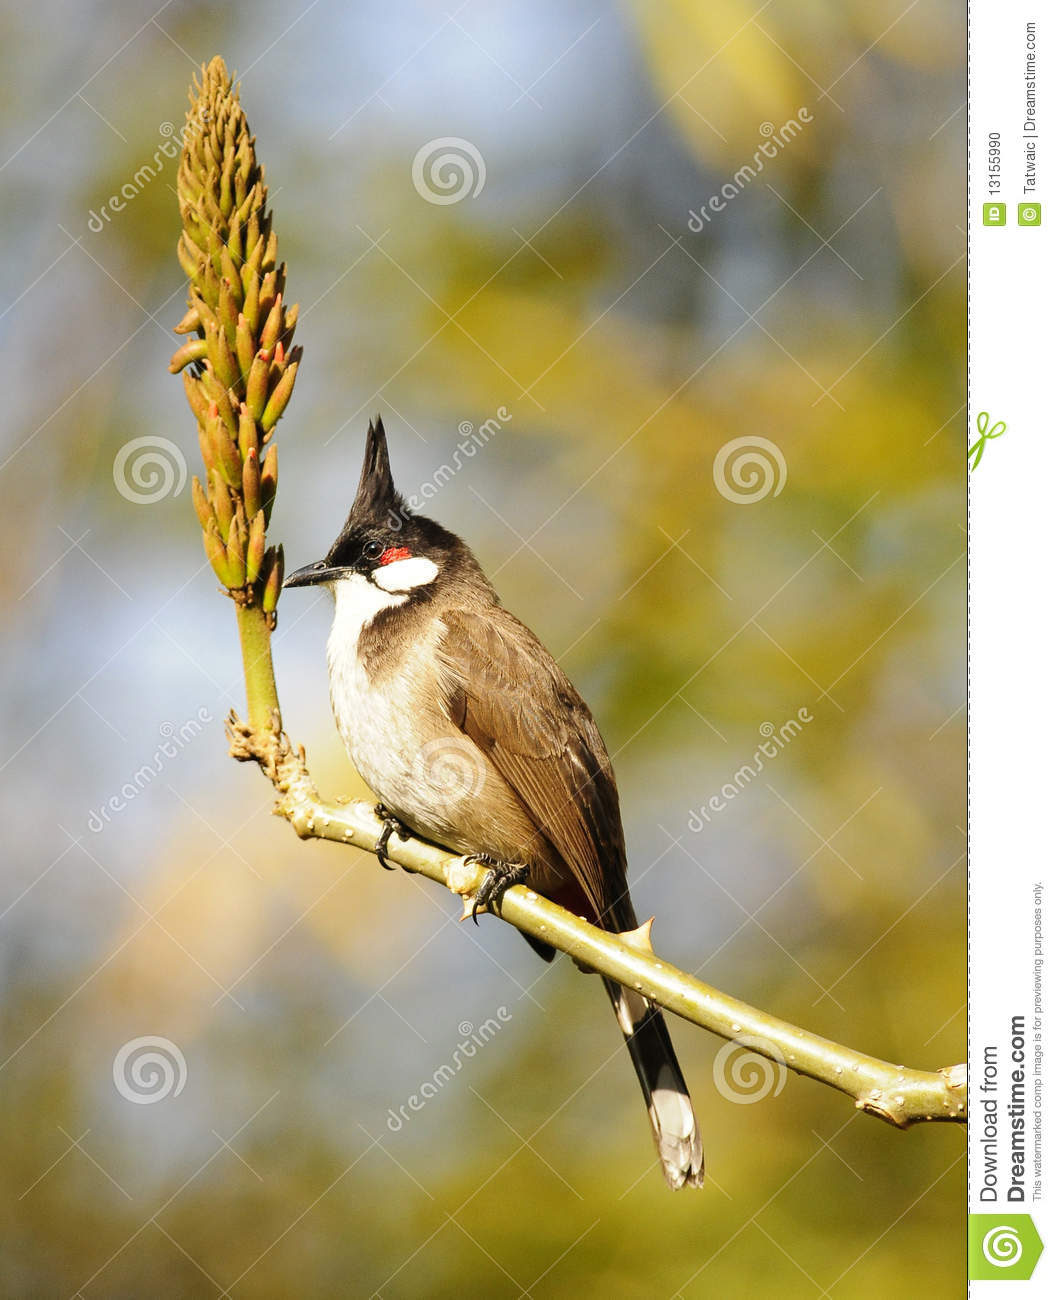 Bird with a strange hairstyle looks like the shape of the branch Ceremony shoes bride rings hairstyles groom click share love